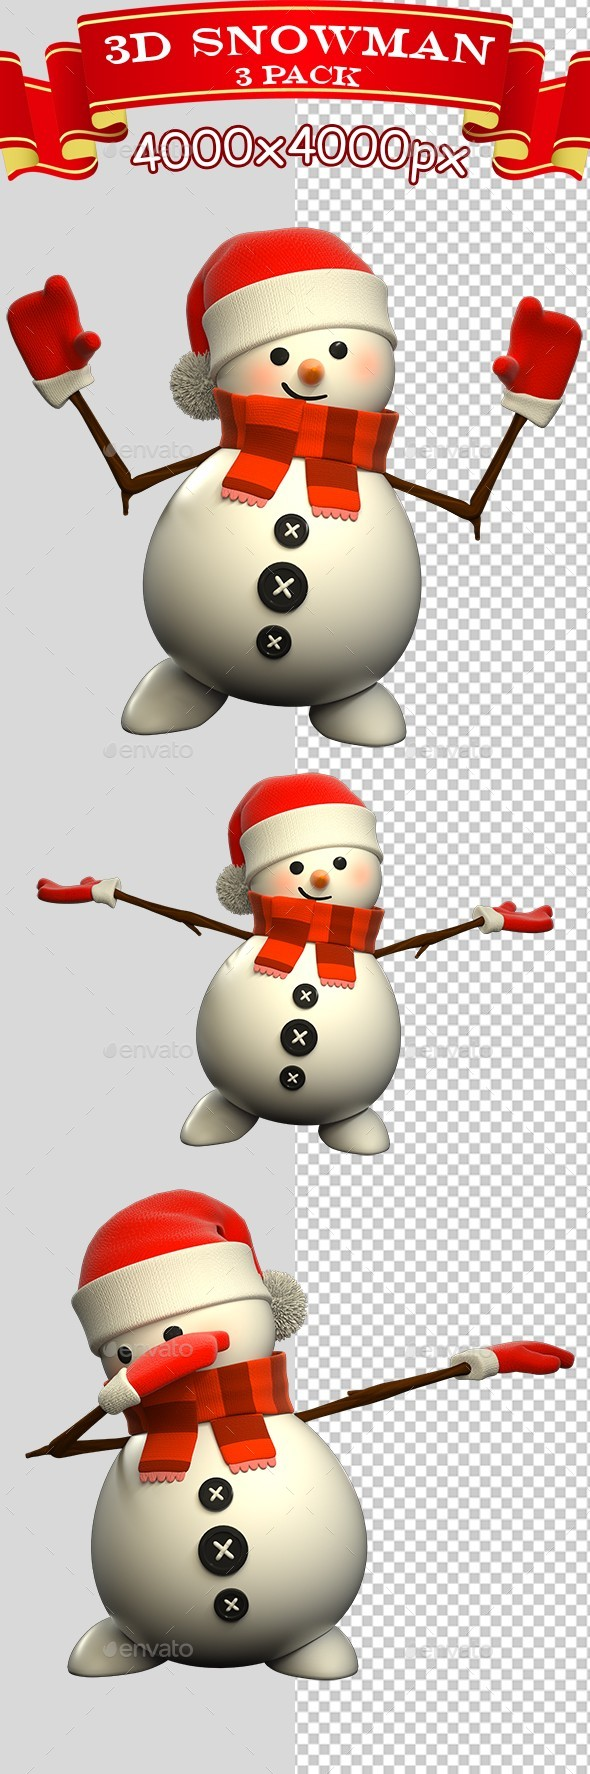 3D Snowman Standing - 3 Pack - Characters 3D Renders